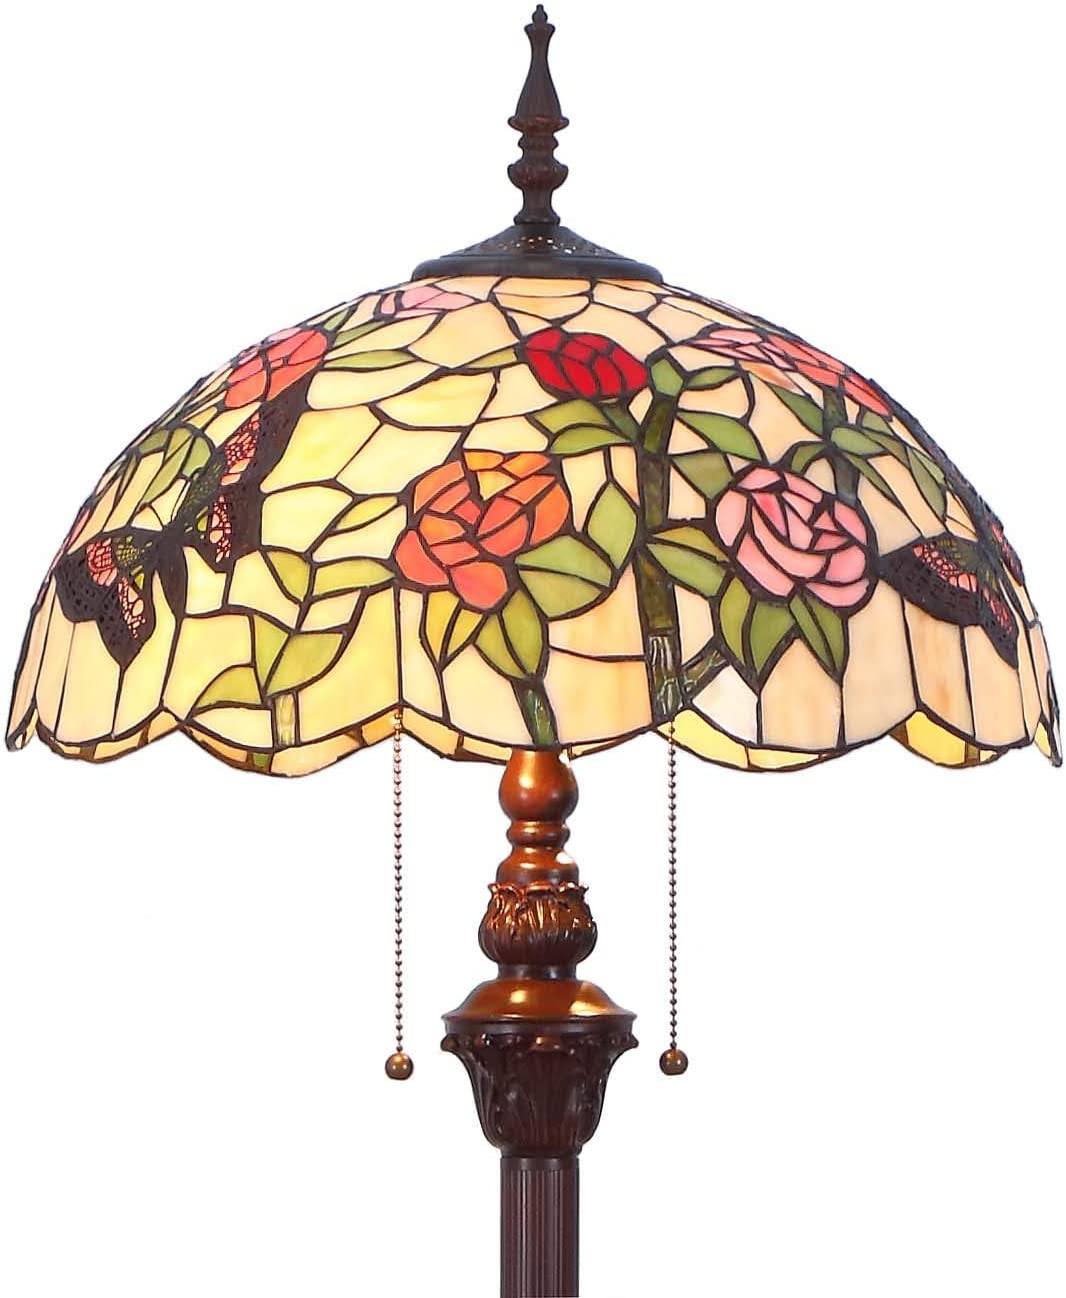 Bieye L11408 Butterfly Tiffany Style Stained Glass Floor Lamp with 16-inch Wide Handmade Lampshade Metal Base for Bedroom Living Room, 59-inch Tall